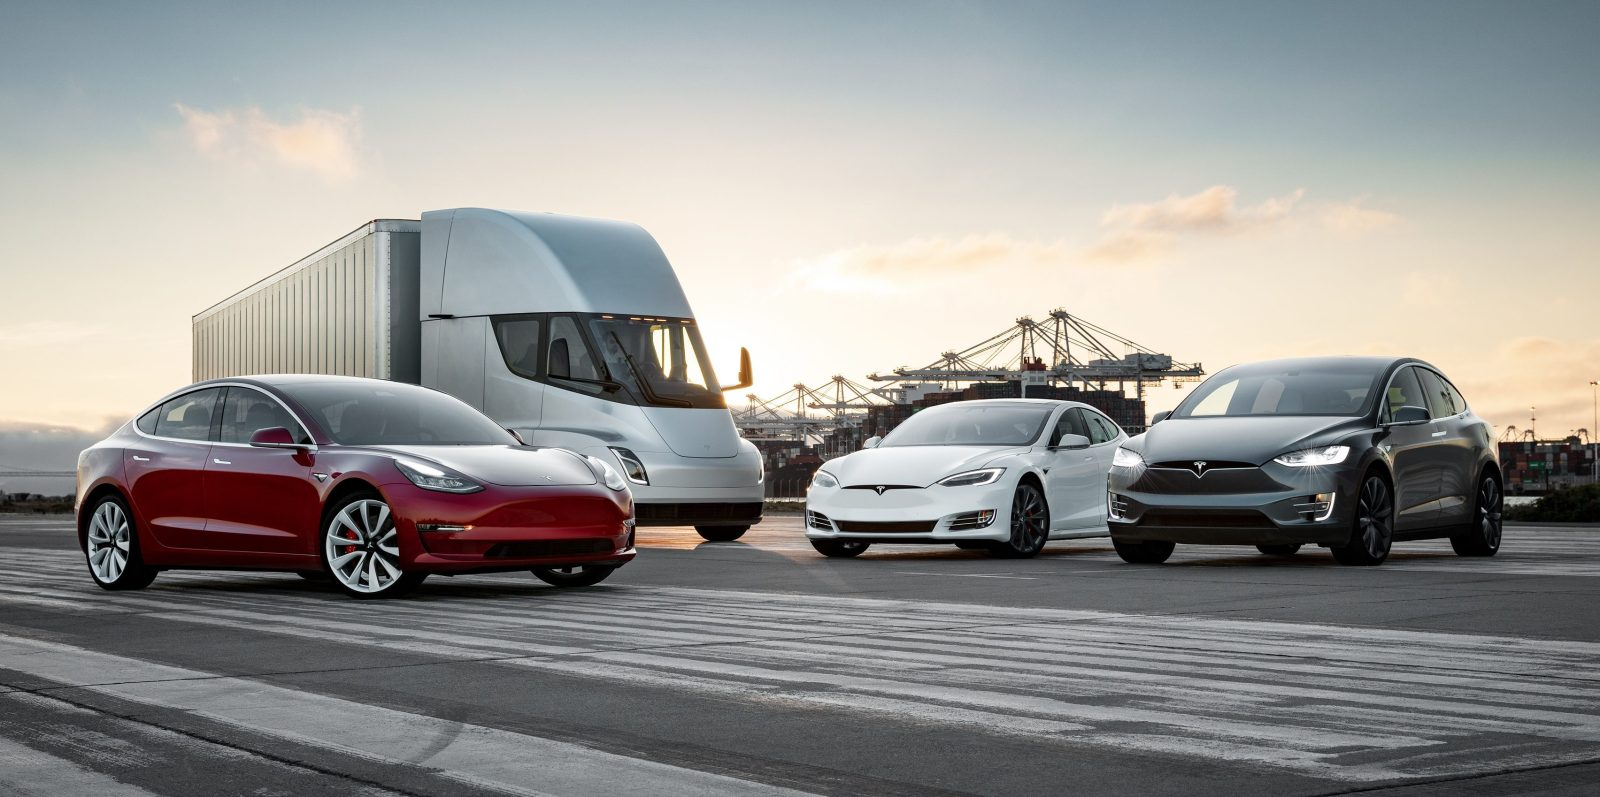 What to expect from Tesla in 2019: Model Y, Model S/X